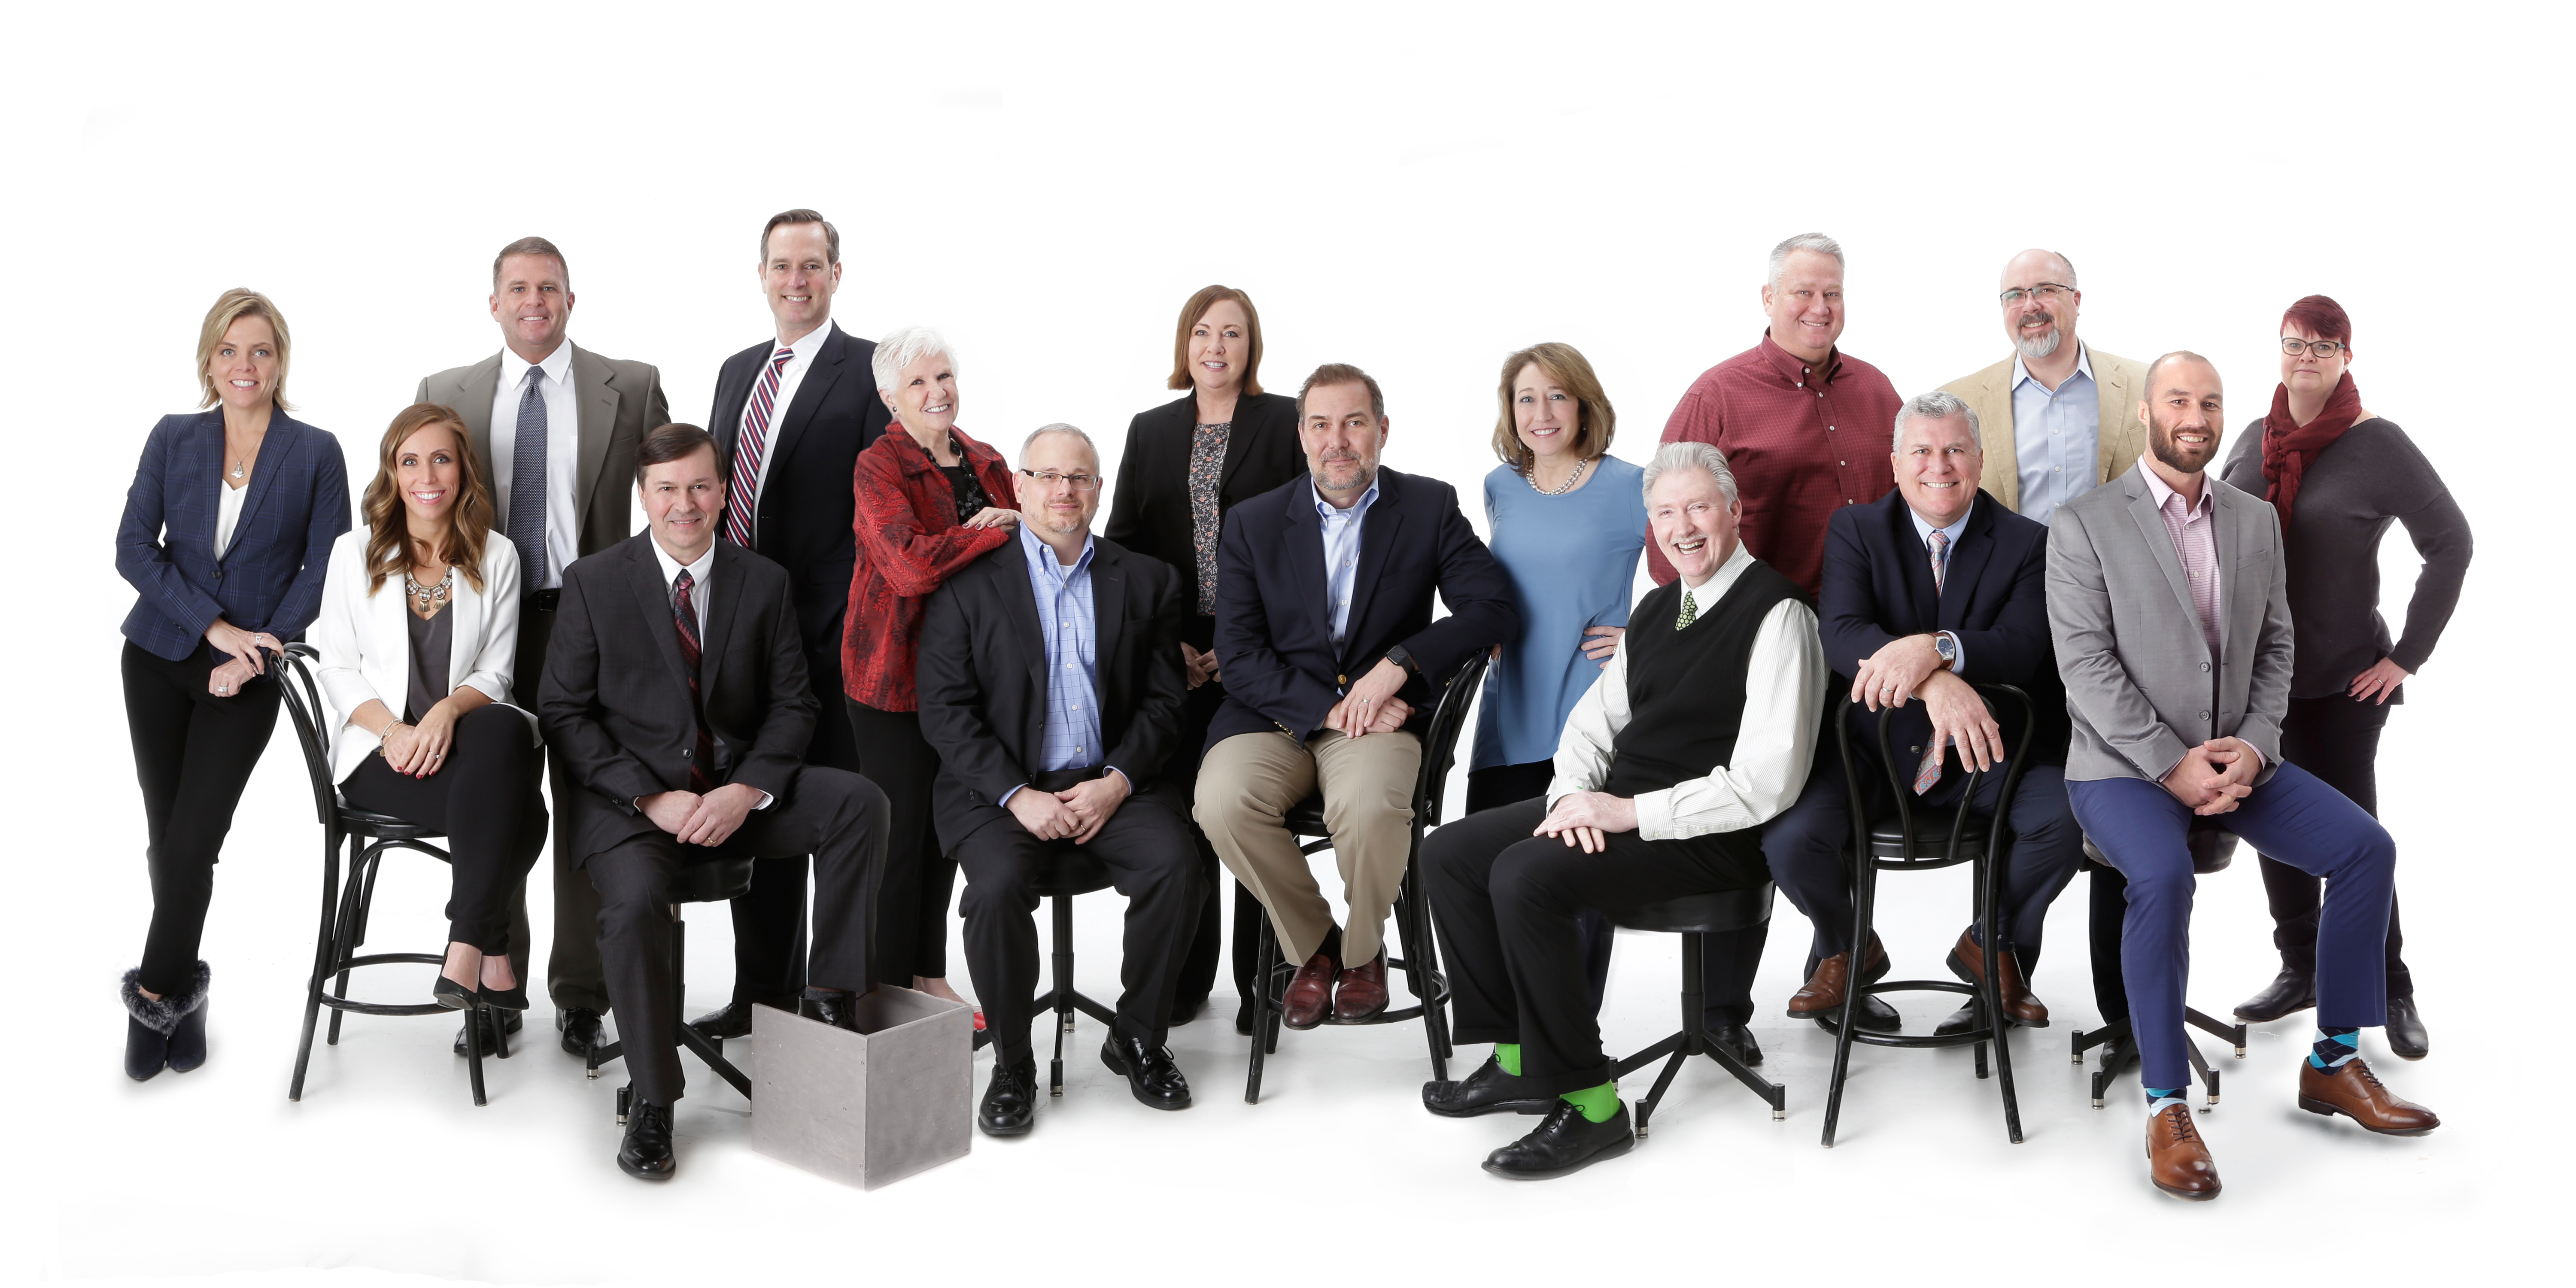 Rocky River Chamber of Commerce Board of Directors 2020-21